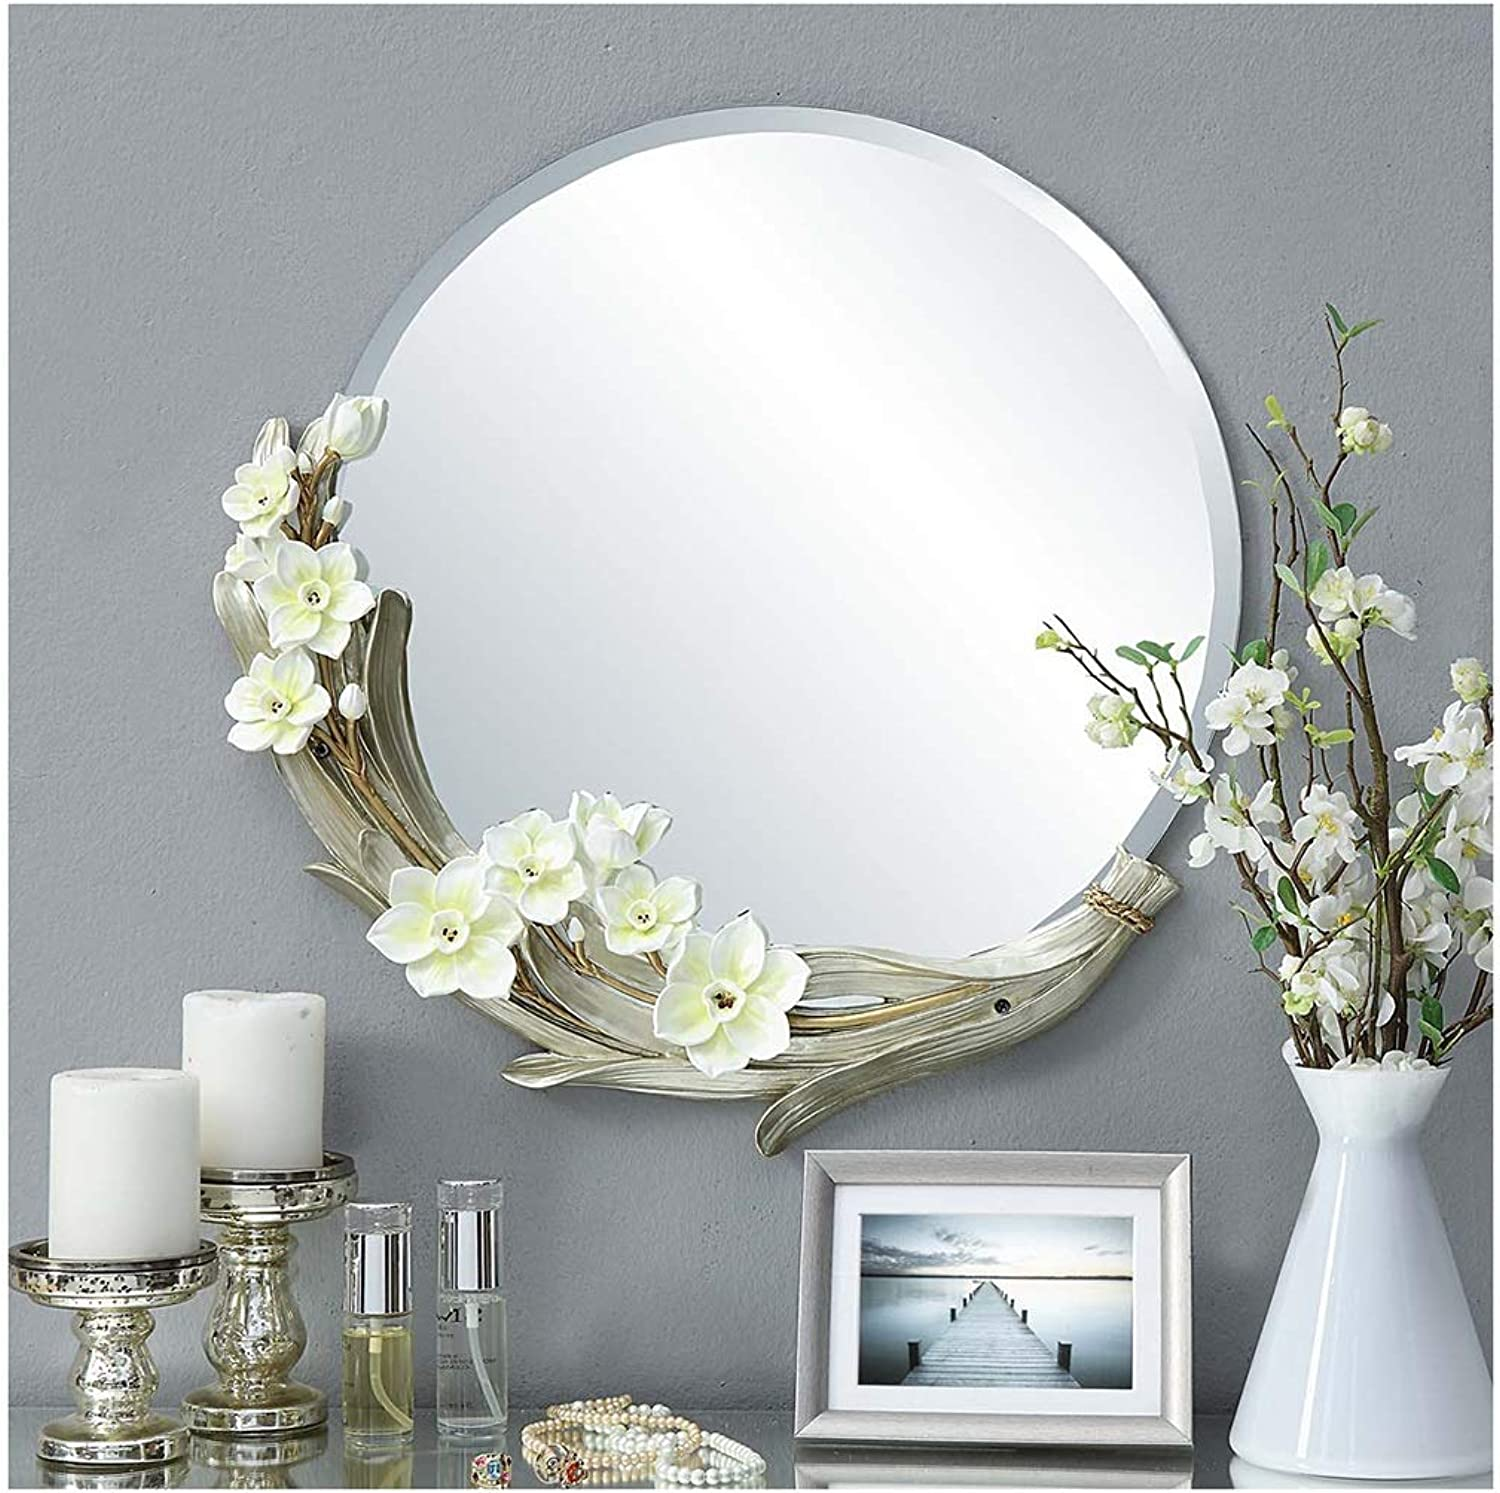 YYF Garden Bathroom wash Wall Hanging Round Mirror Flower Diameter 56cm (22 inches) (color   Green)